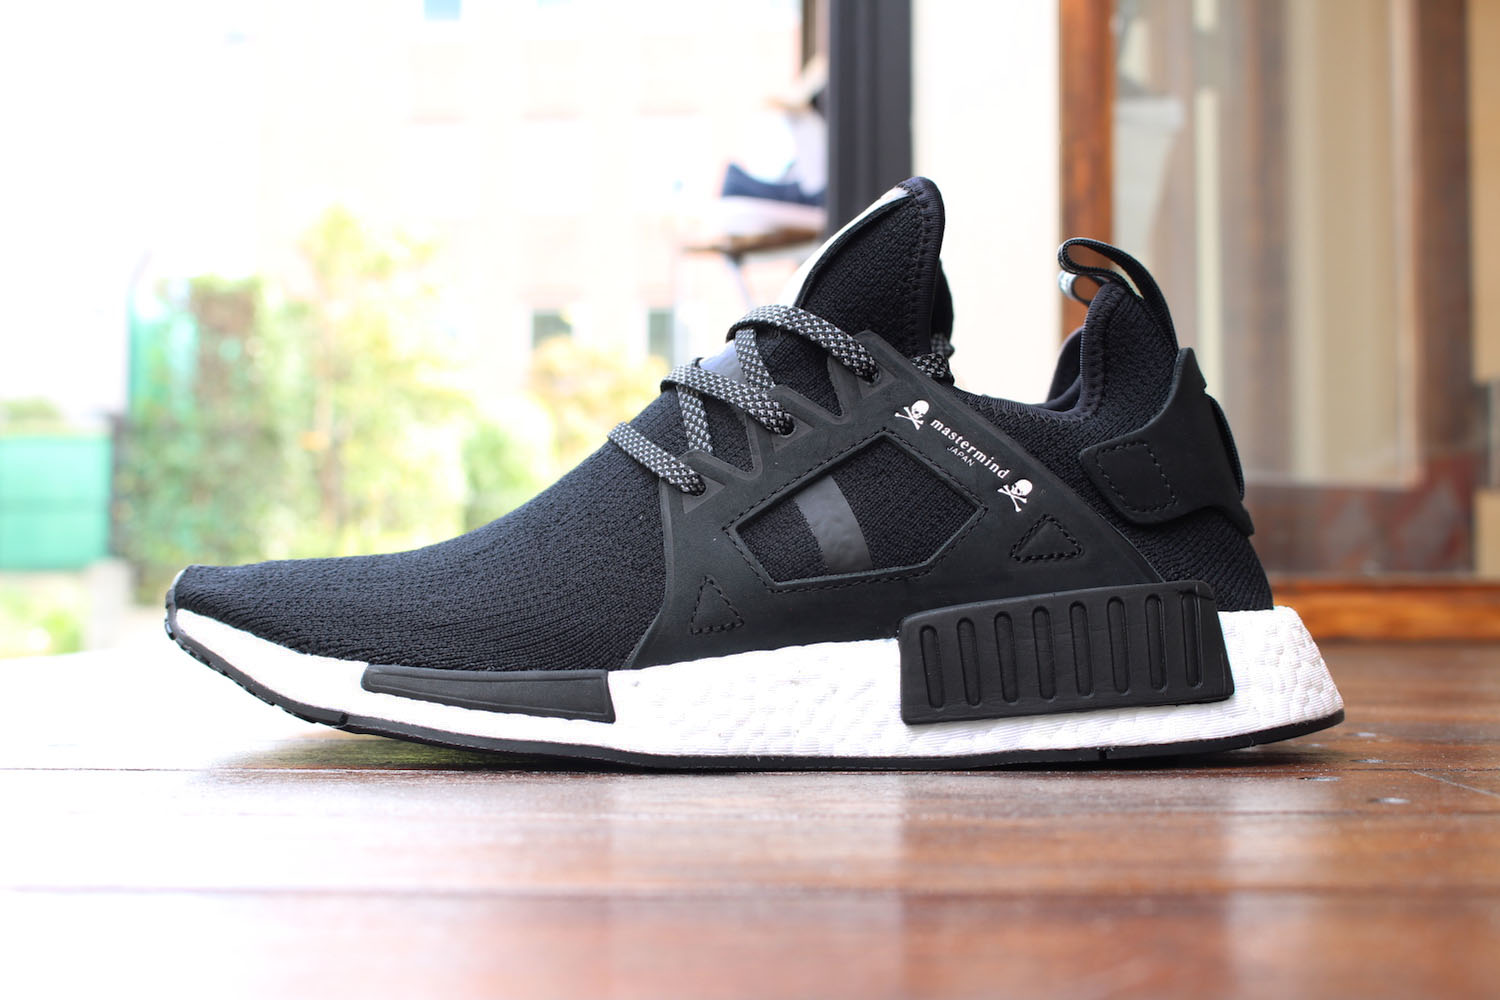 You can wear this NMD in Winter! Adidas NMD XR1 Winter Review